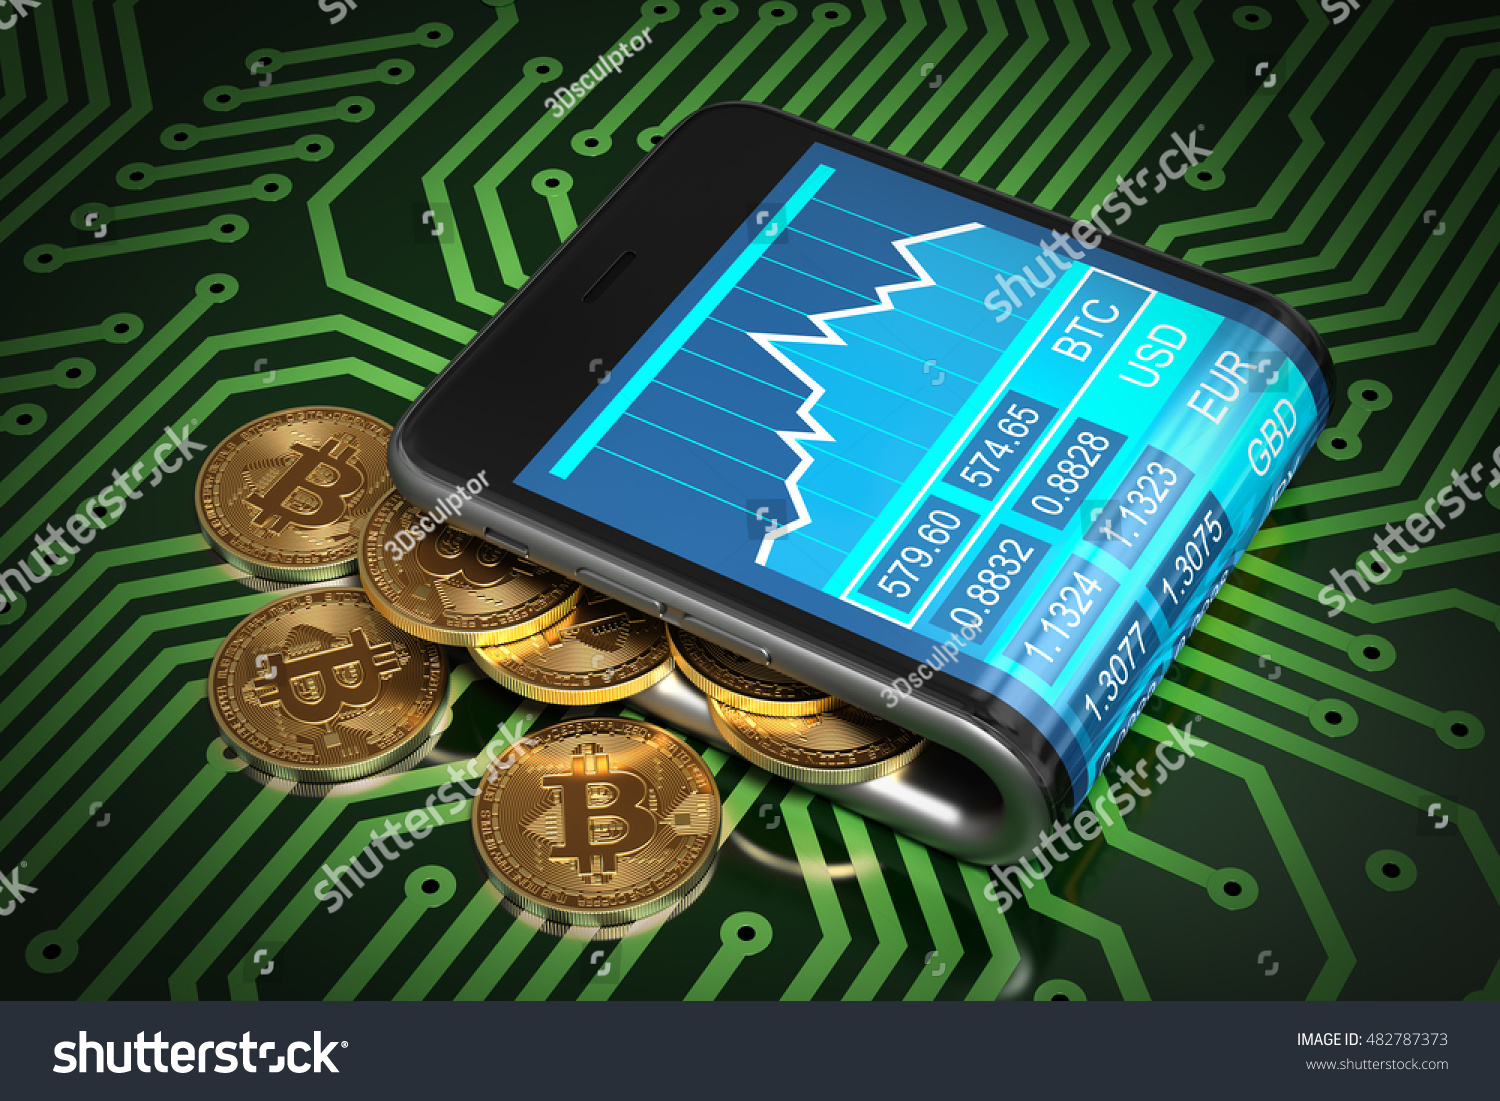 Concept Of Digital Wallet And Bitcoins On Green Printed Circuit Board Illustration A Spill Out The Curved Smartphone 3d Ez Canvas